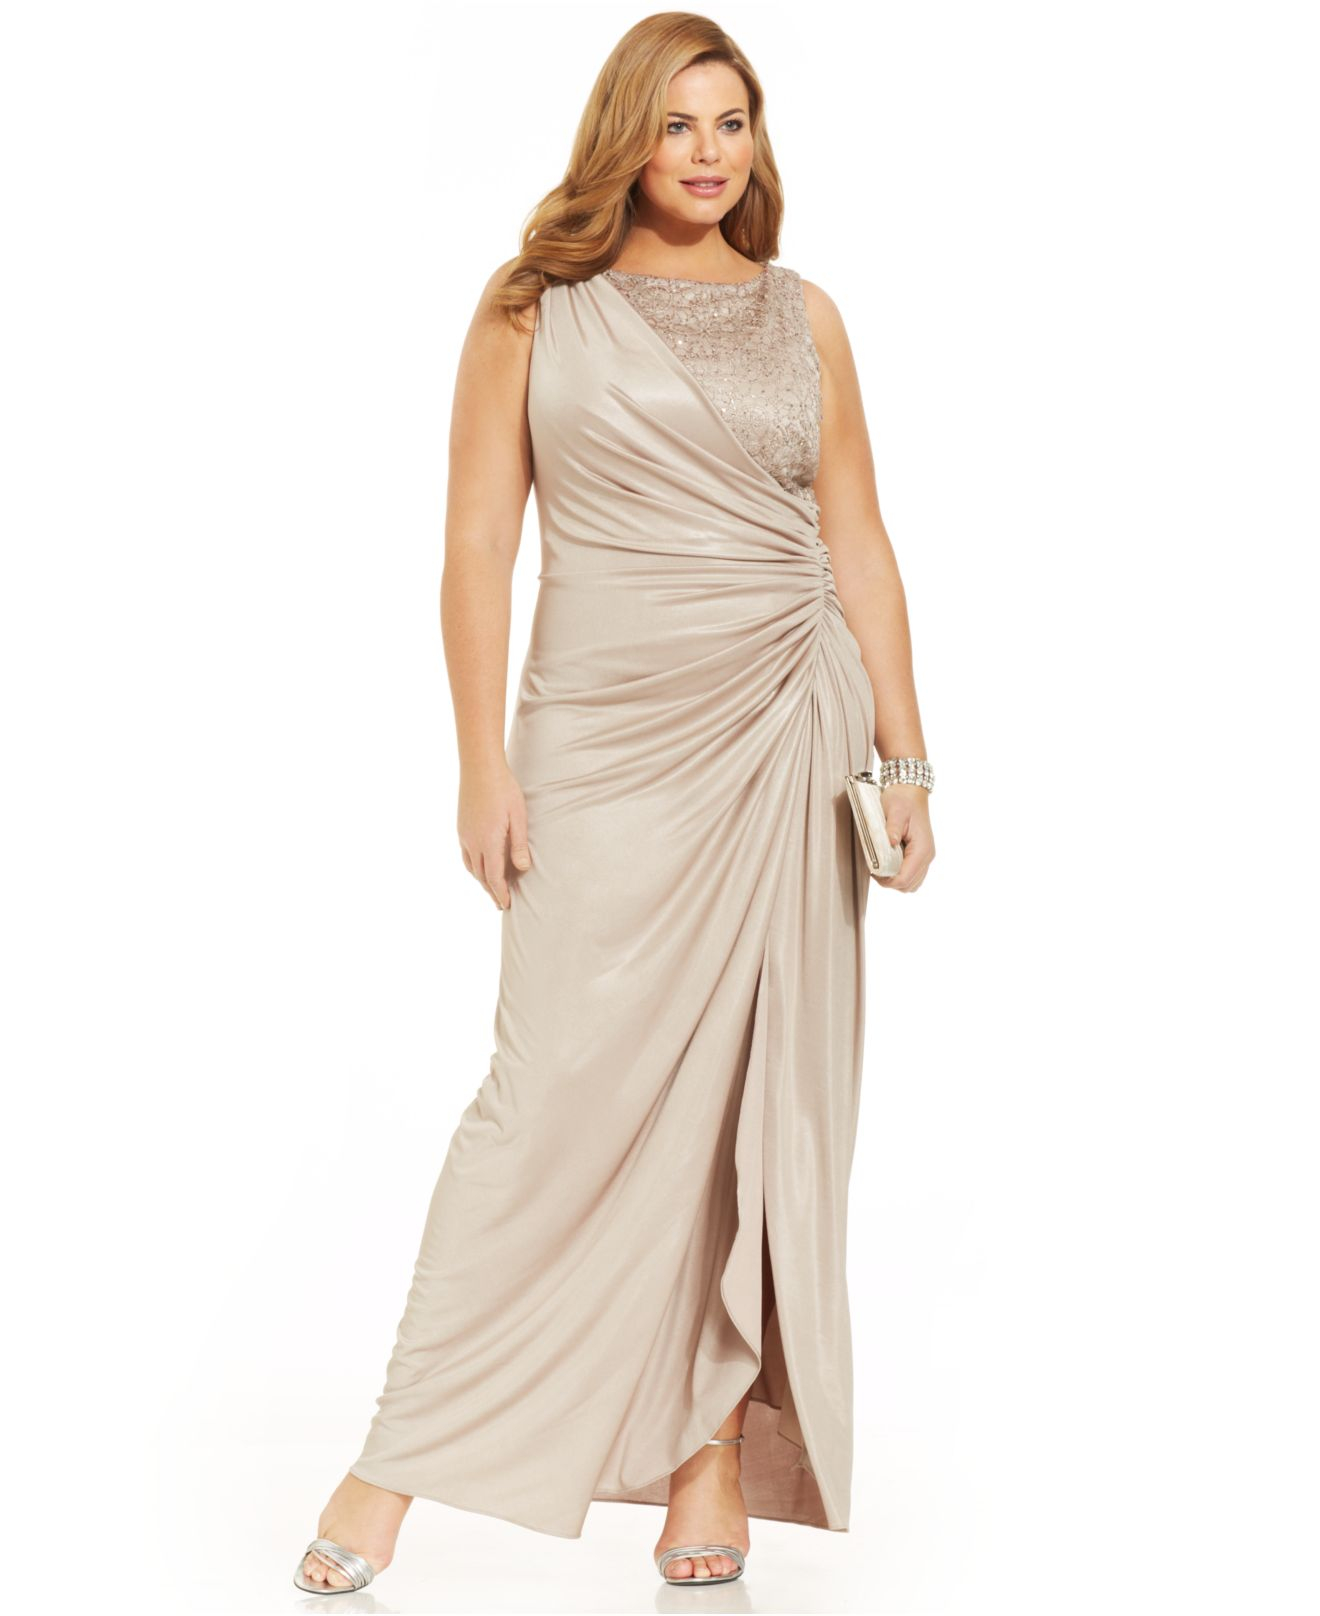 Lyst - Adrianna Papell Plus Size Draped Metallic Gown in Metallic